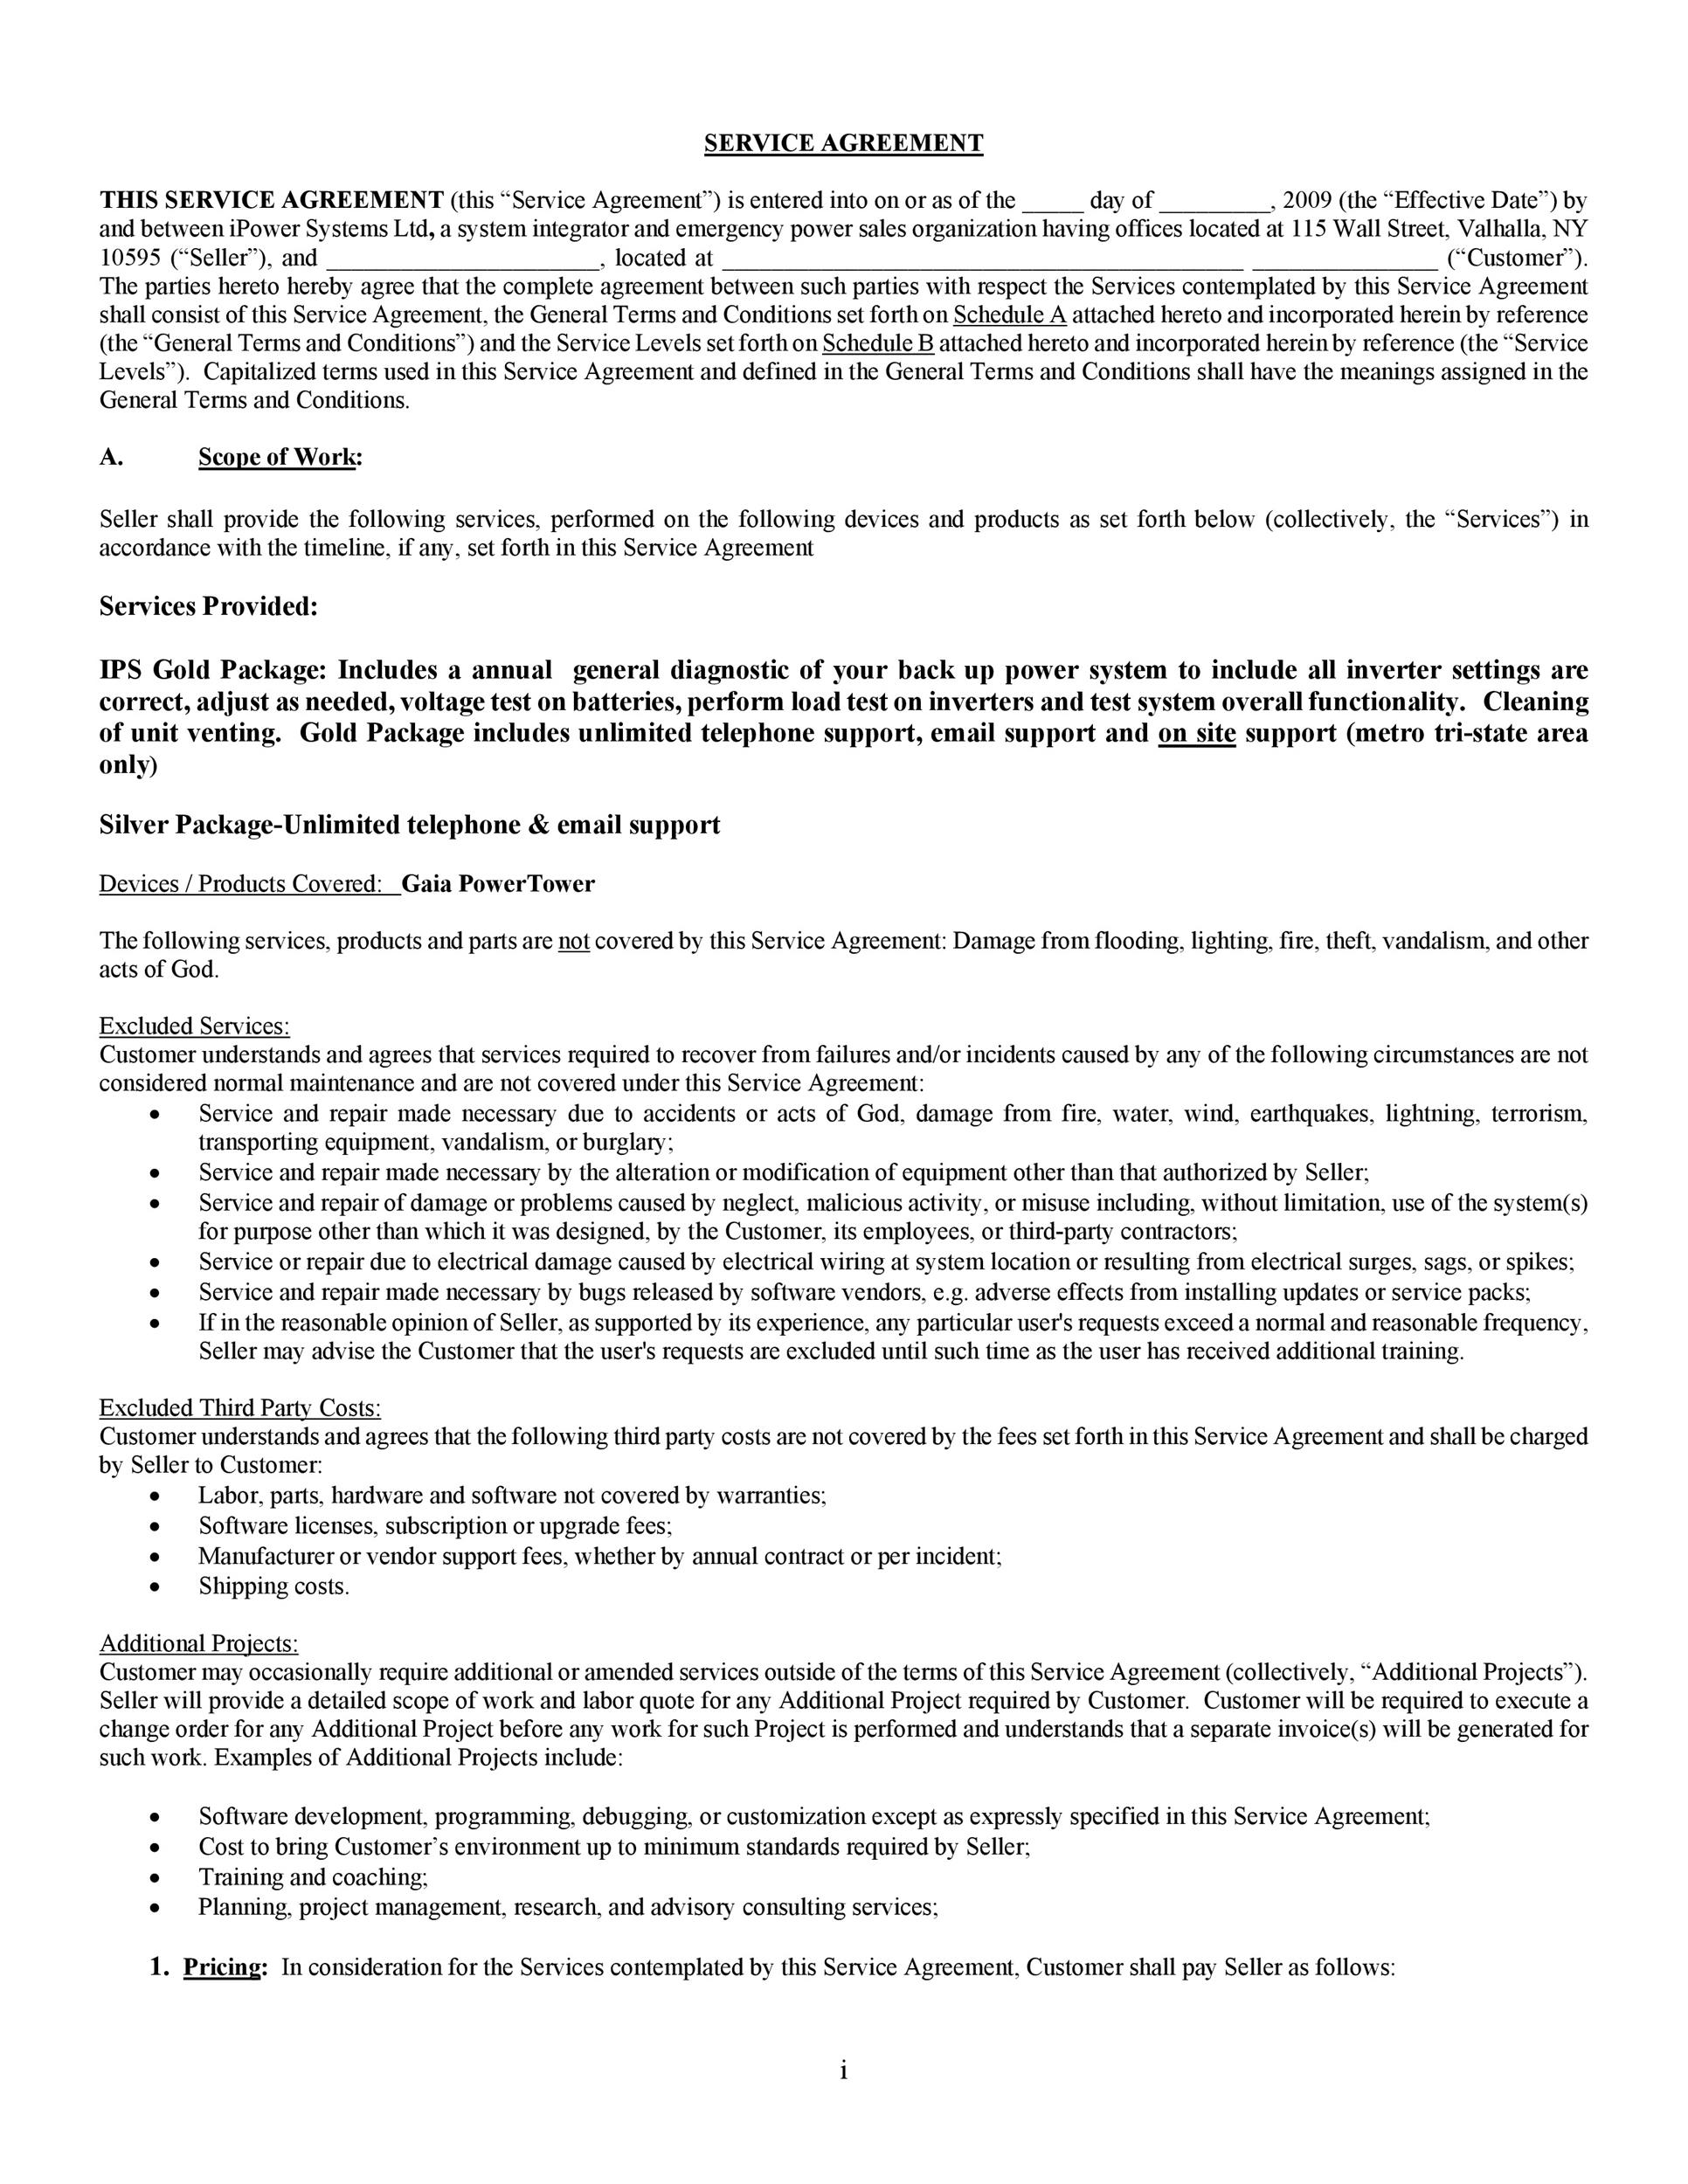 Free Service Agreement Template 01